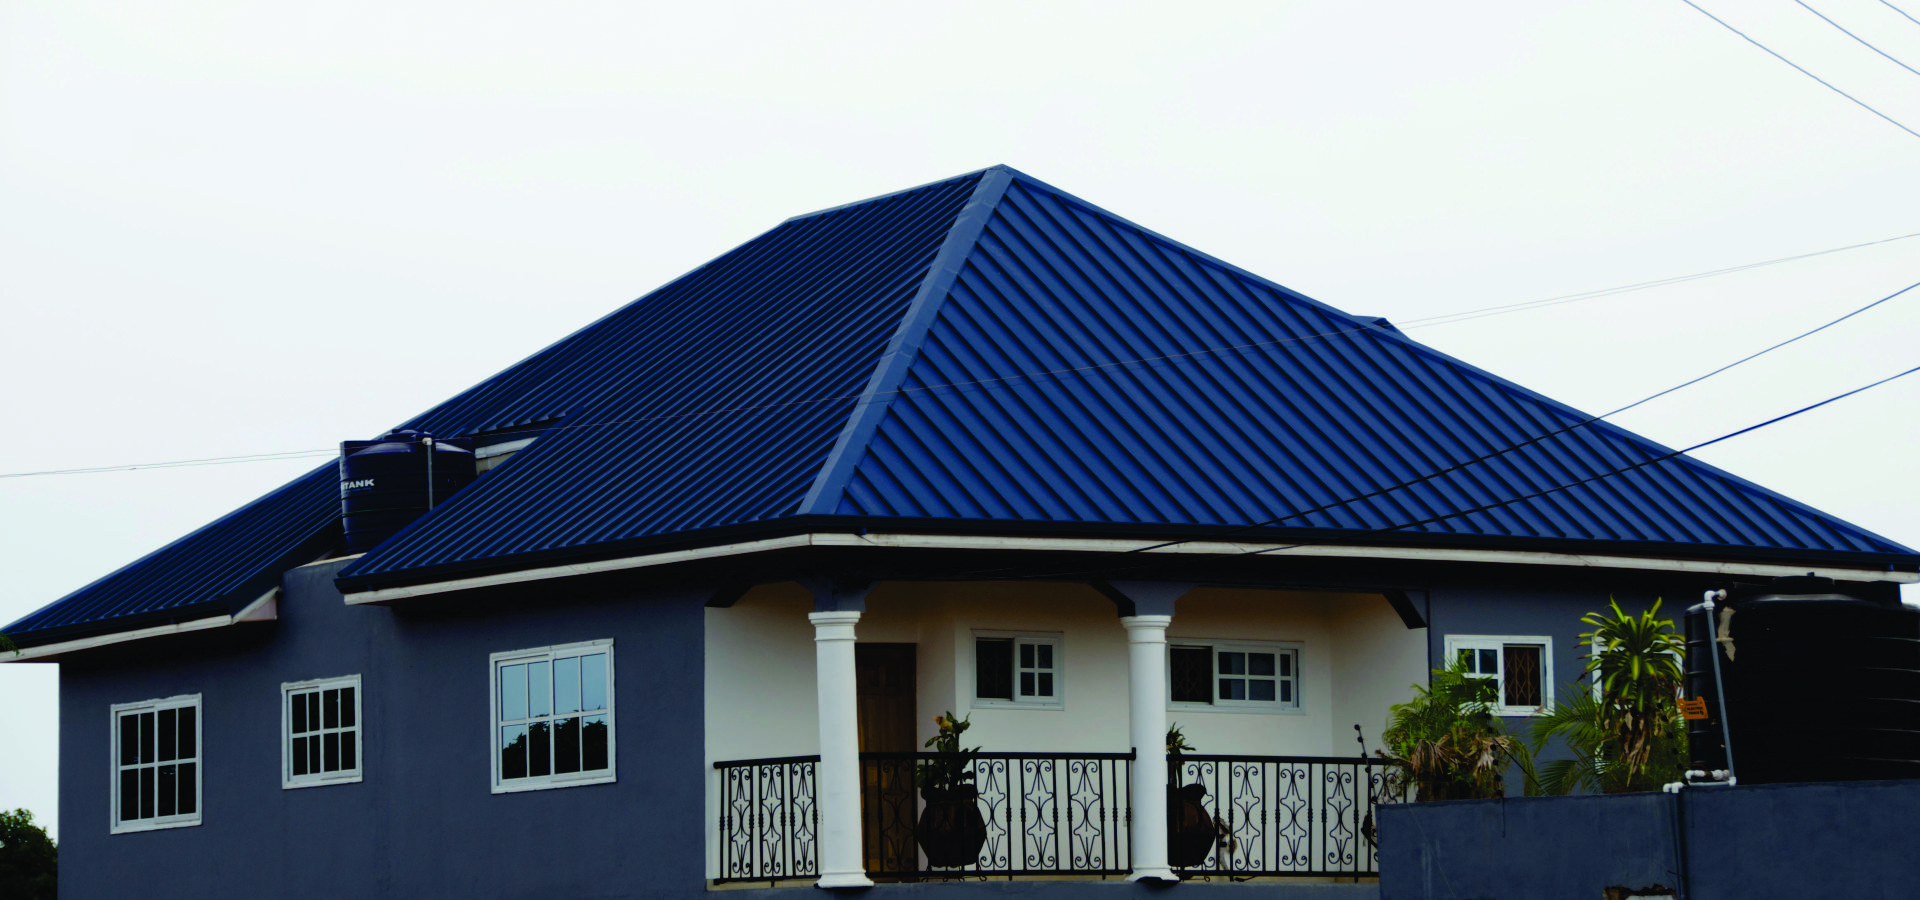 Dbs Roofing Sheet Ghana 12 300 About Roof